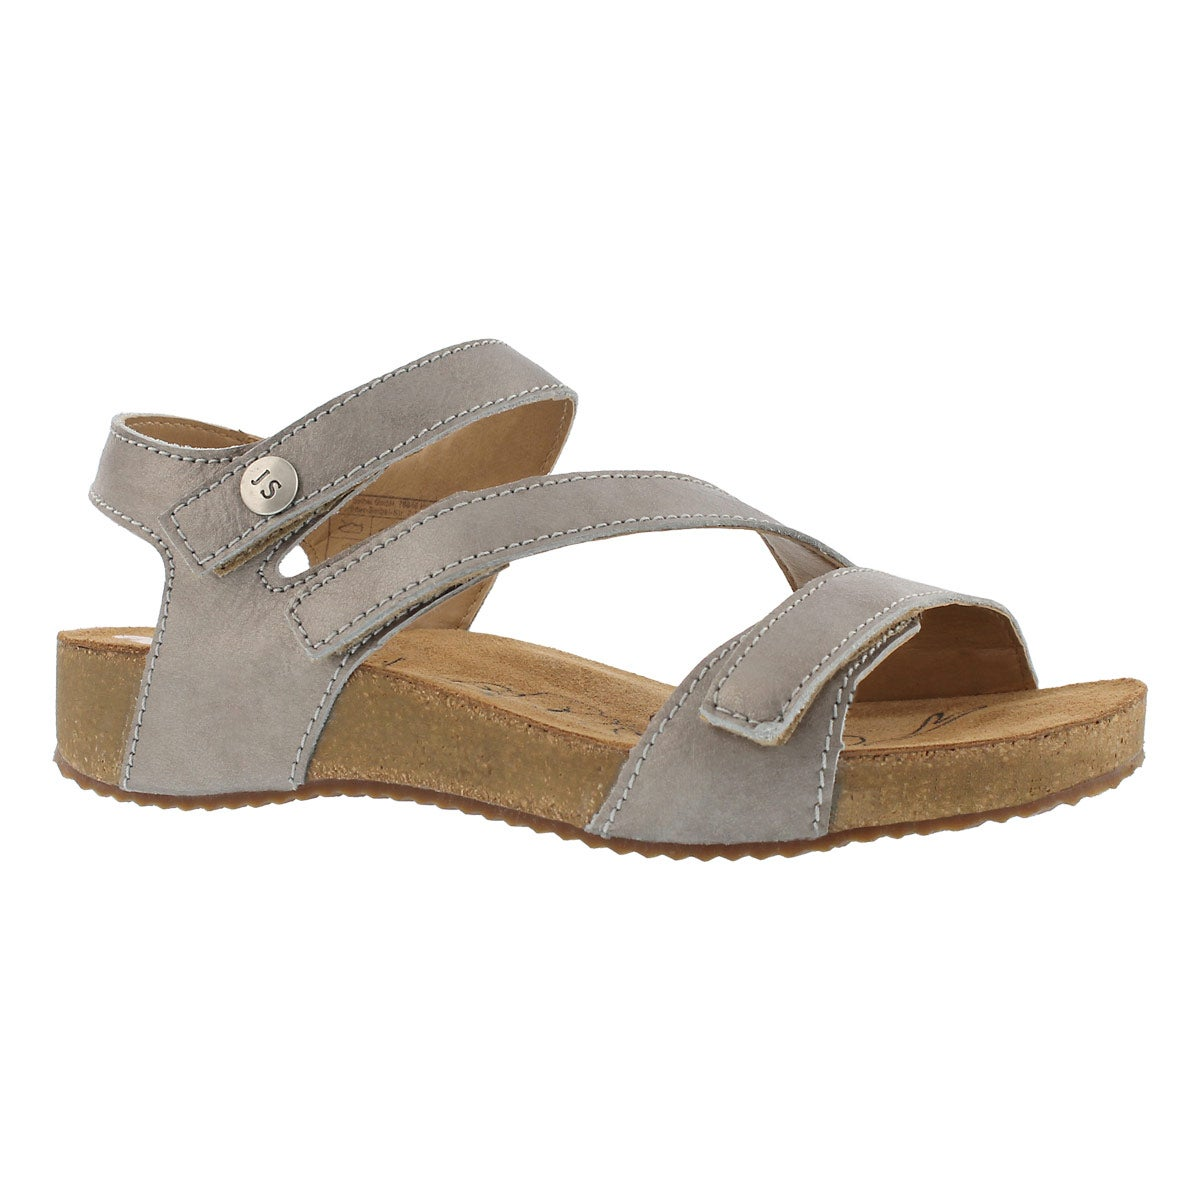 Women's TONGA 25 cristal casual sandals